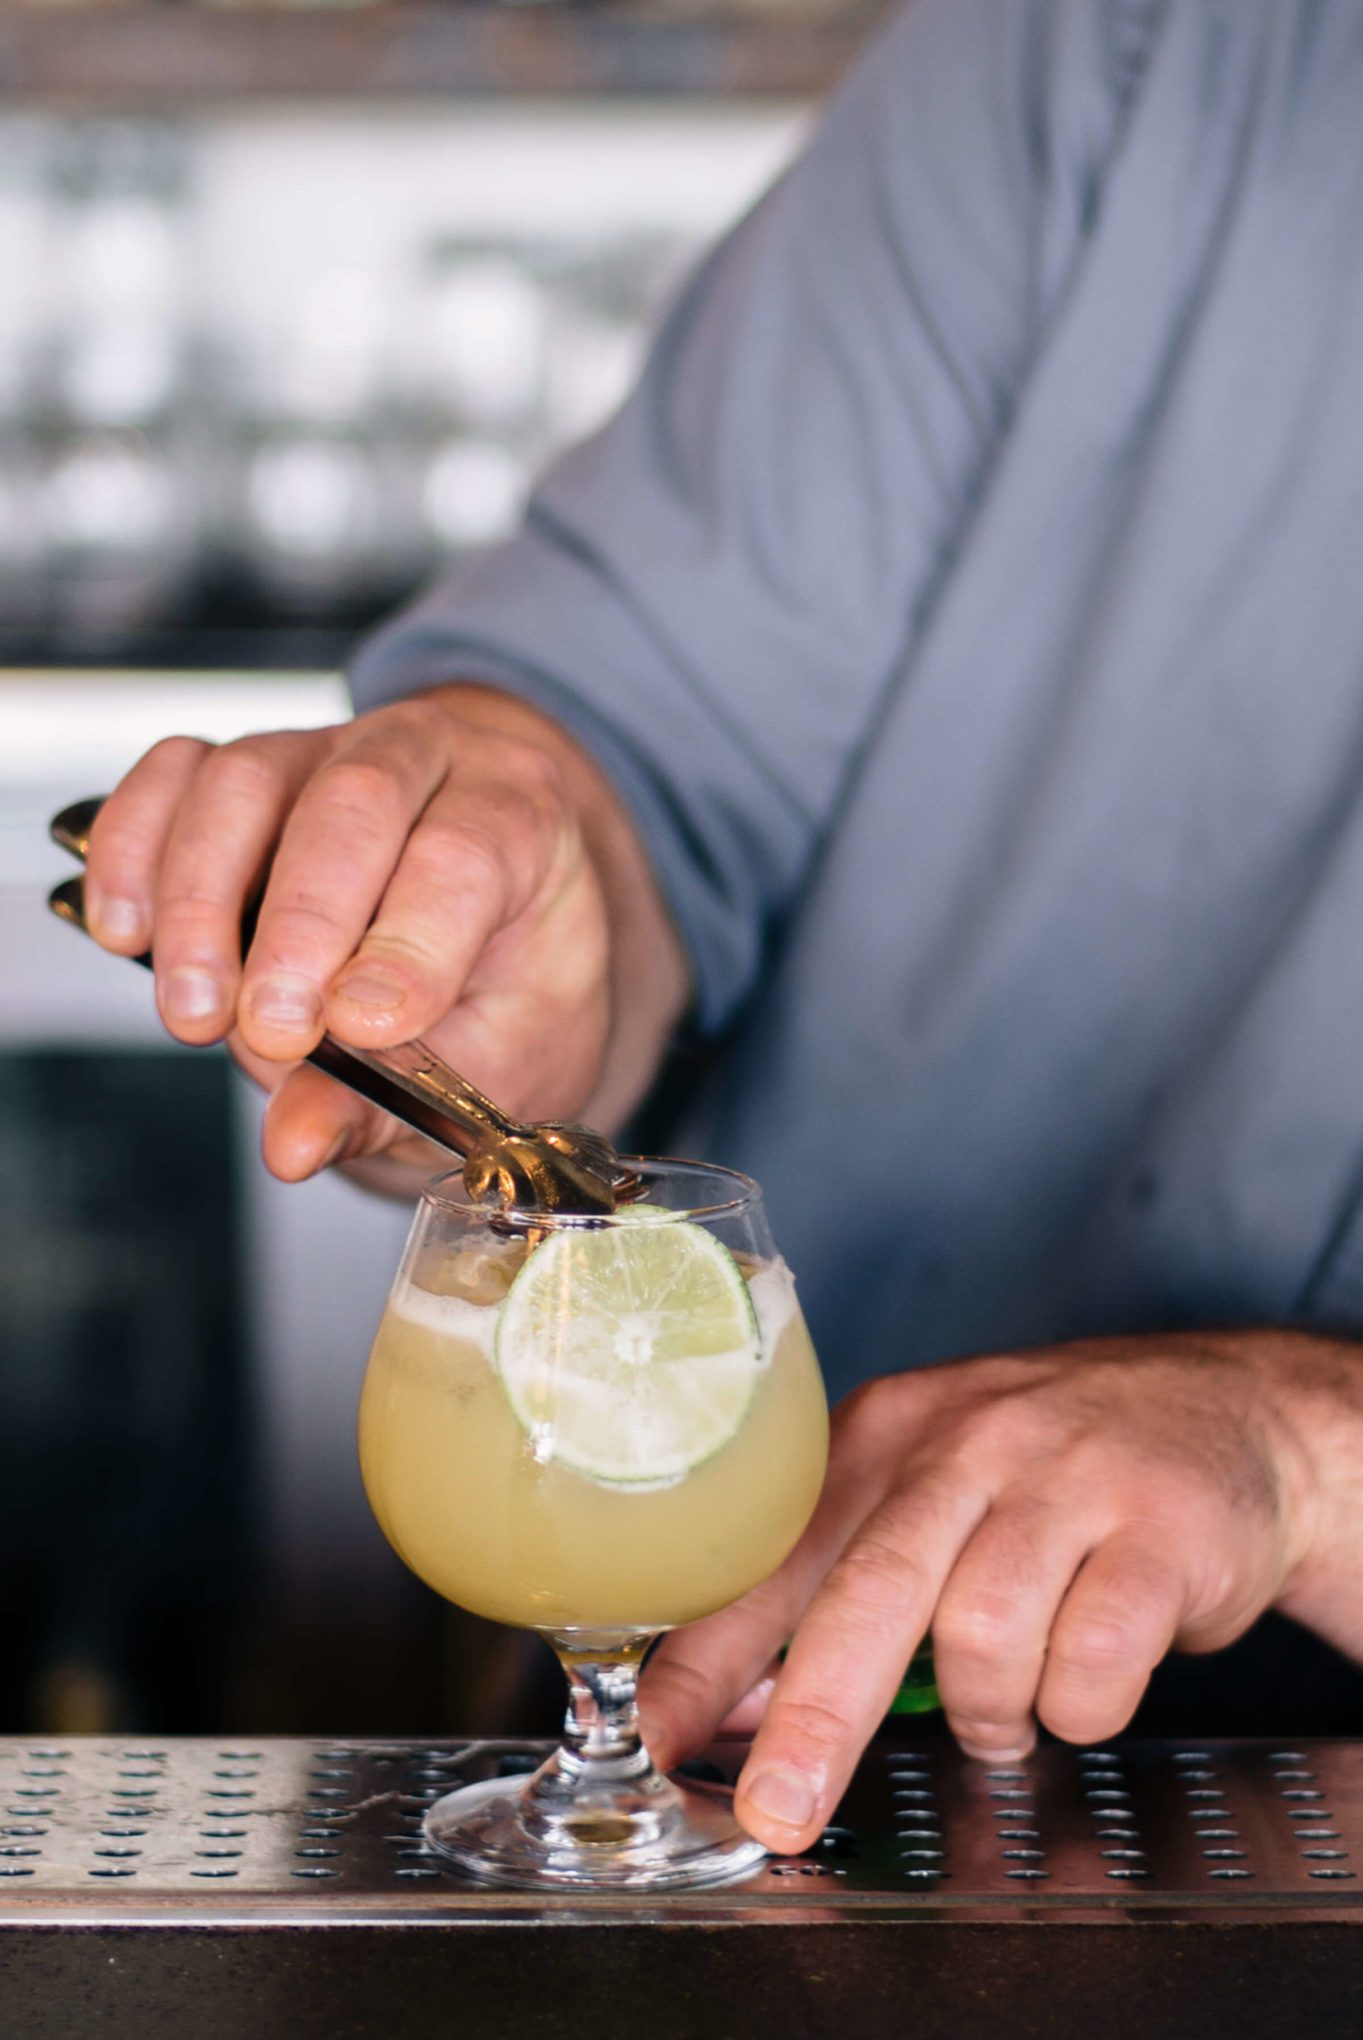 Placing lime garnishes San Francisco Summer Cocktails: Hog Island Saul Ranella Sacred Cenote Mezcal Amaro Cocktail Recipe, restaurant recipe, The Taste SF